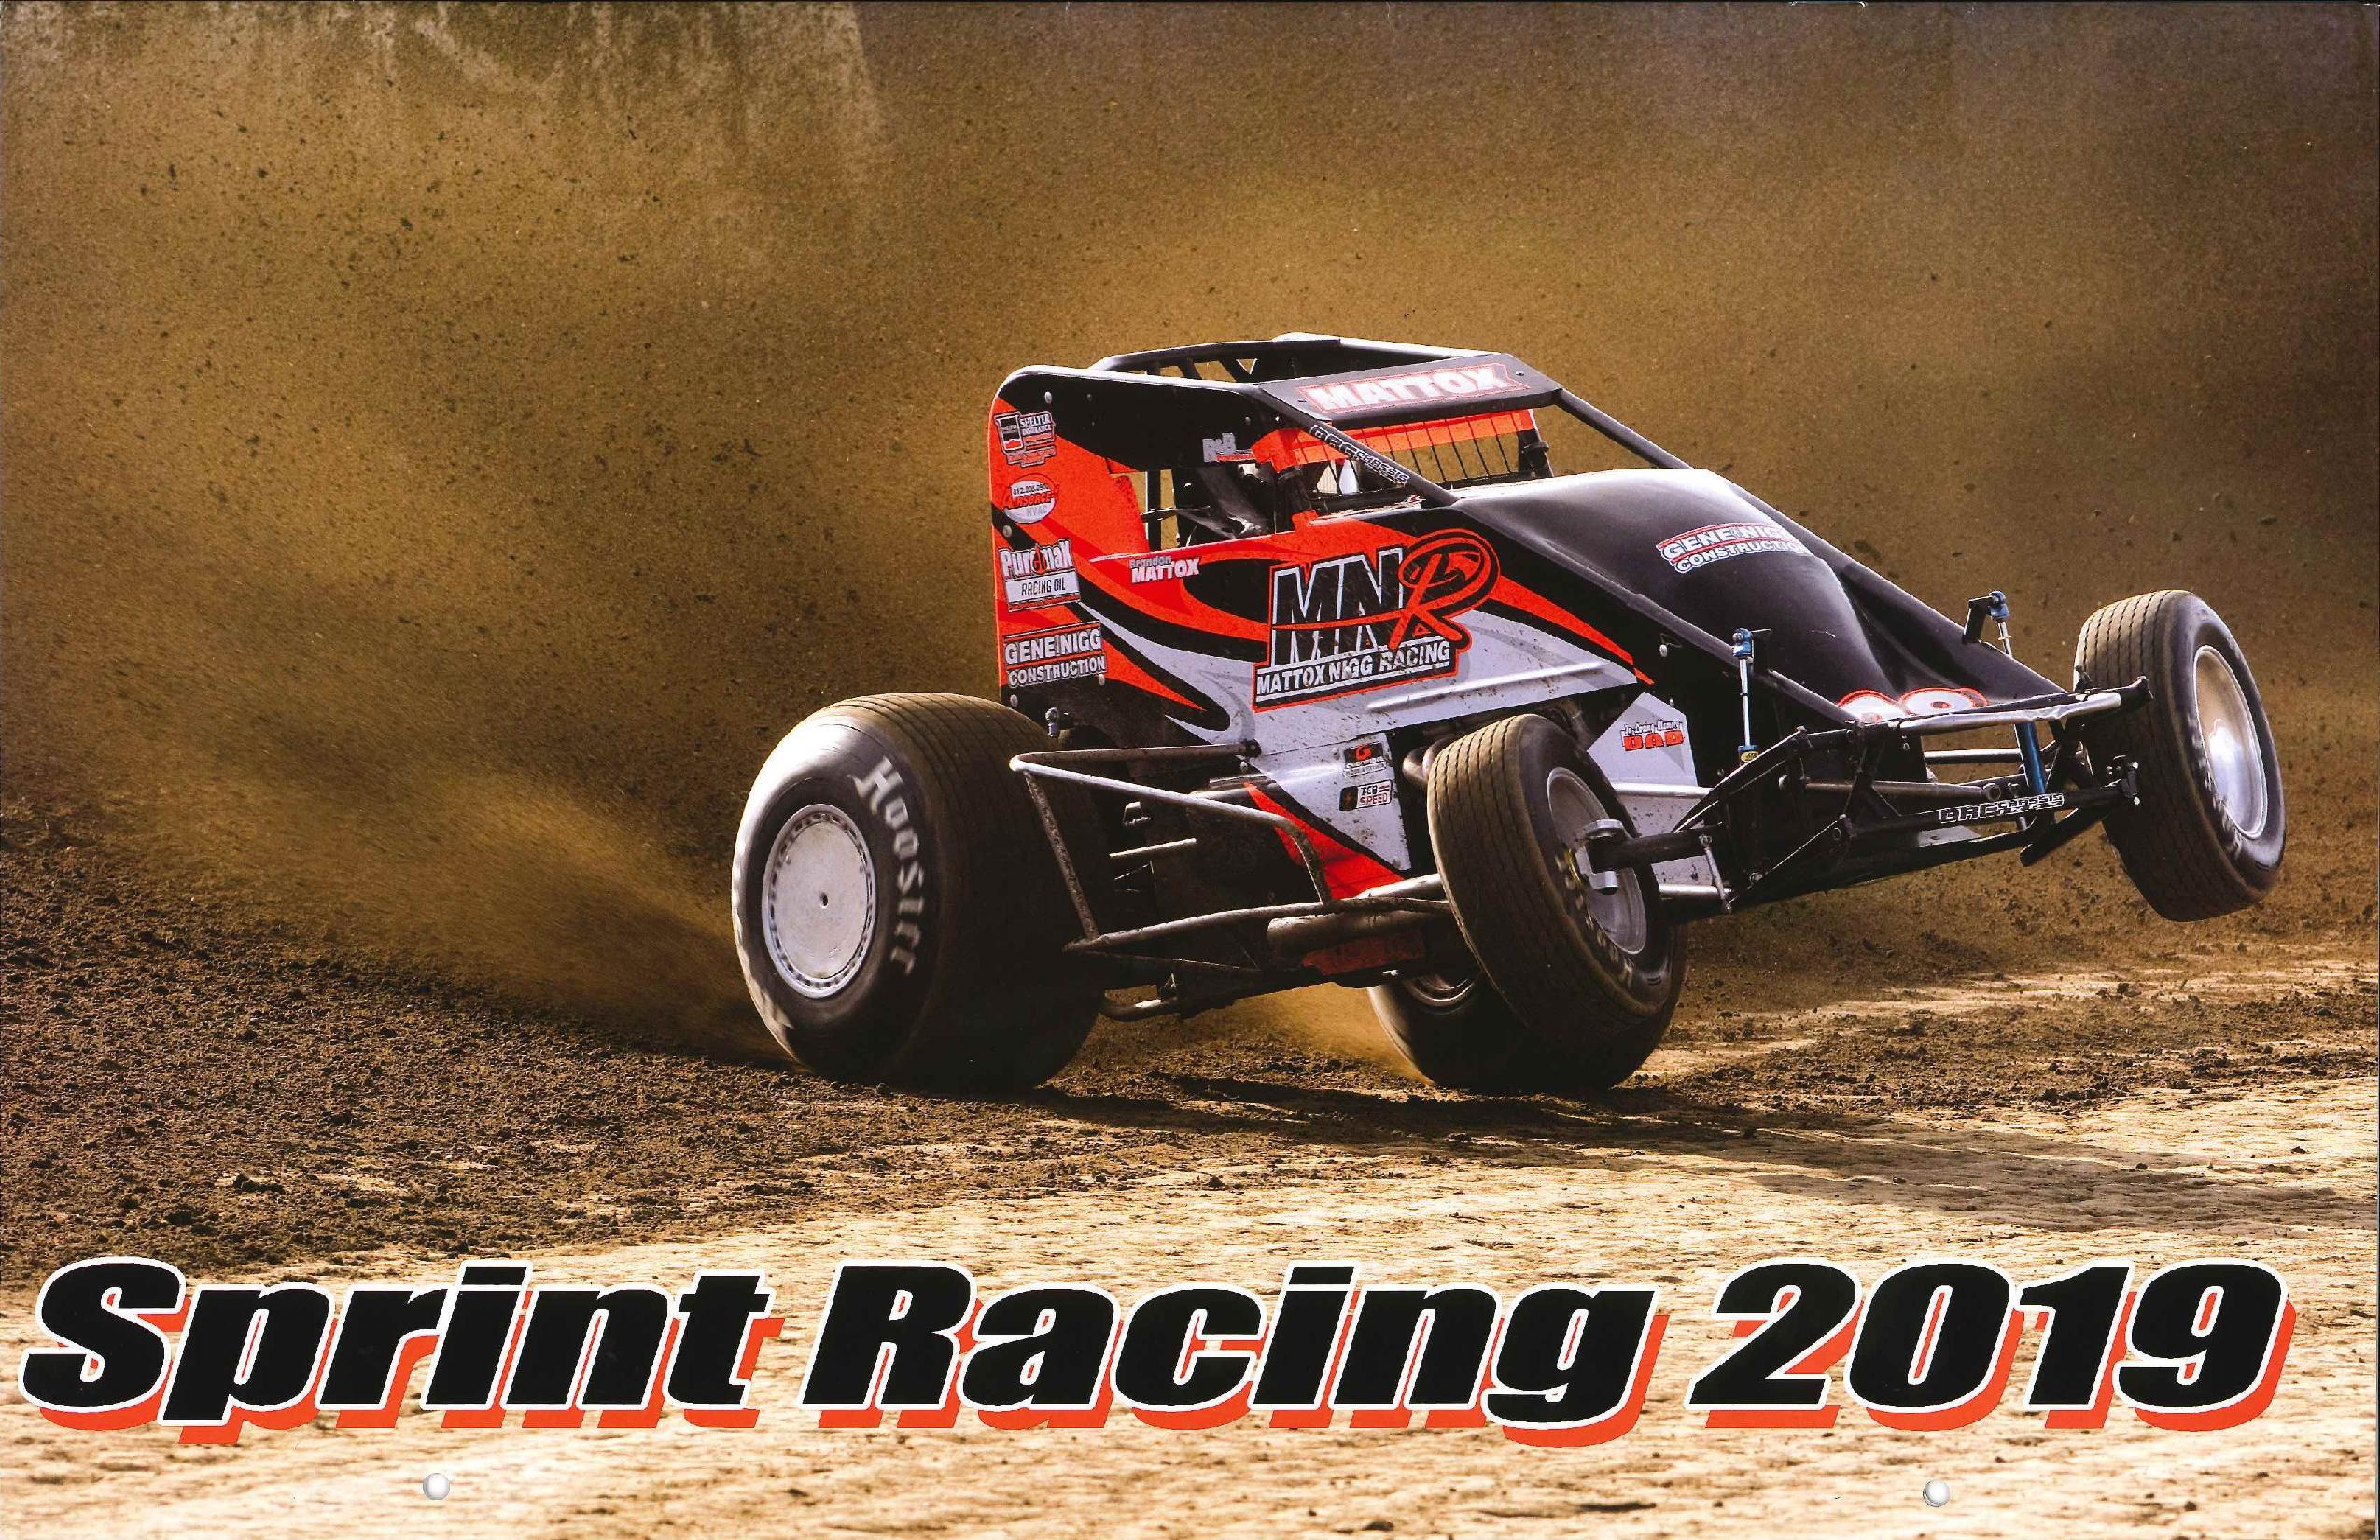 2019 Paul Oxman Sprint Racing Calendar